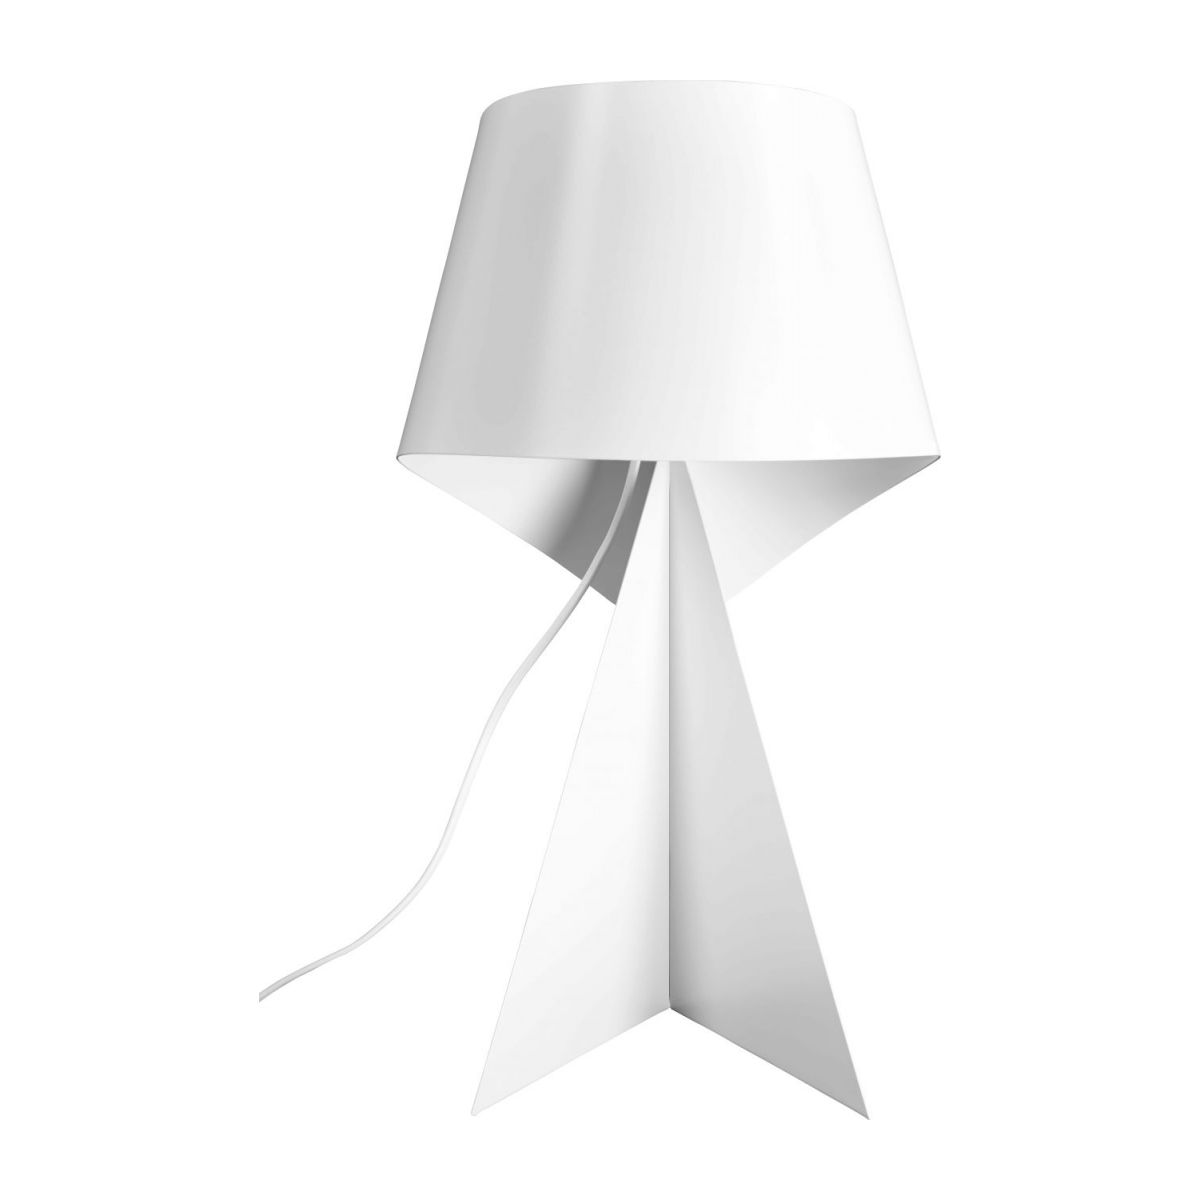 Lampe de table en métal - Blanc - 52 cm n°2